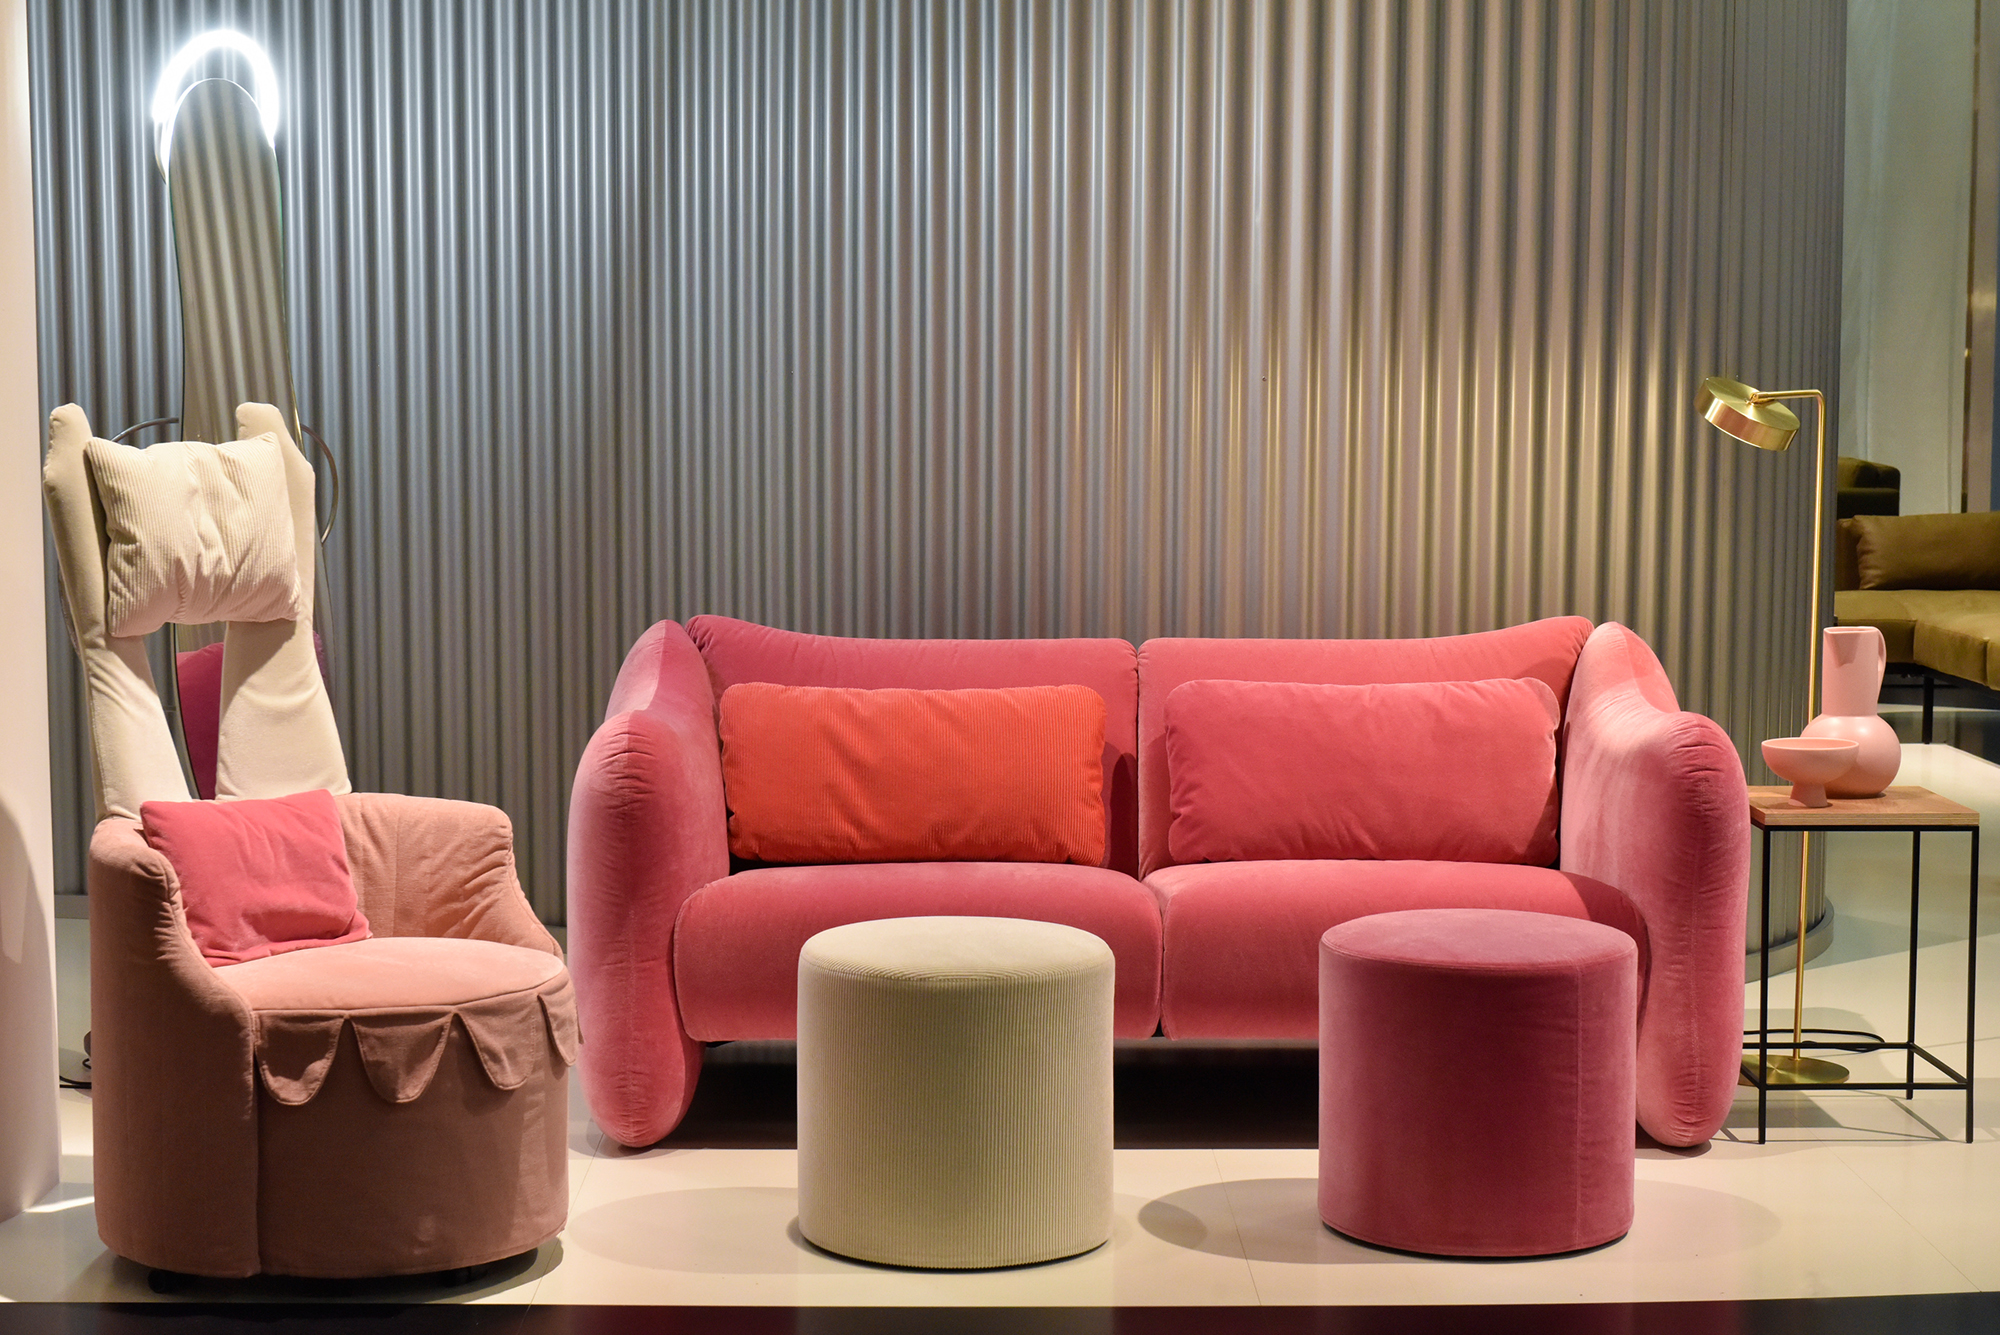 Things are finally getting more colourful and thus increasingly cosier in the living room and other spaces. However, things are also getting homier in the contract business: colour is also coming to play in offices and hotels, for example, with striking designs, such as those from Brühl seen here. © Koelnmesse